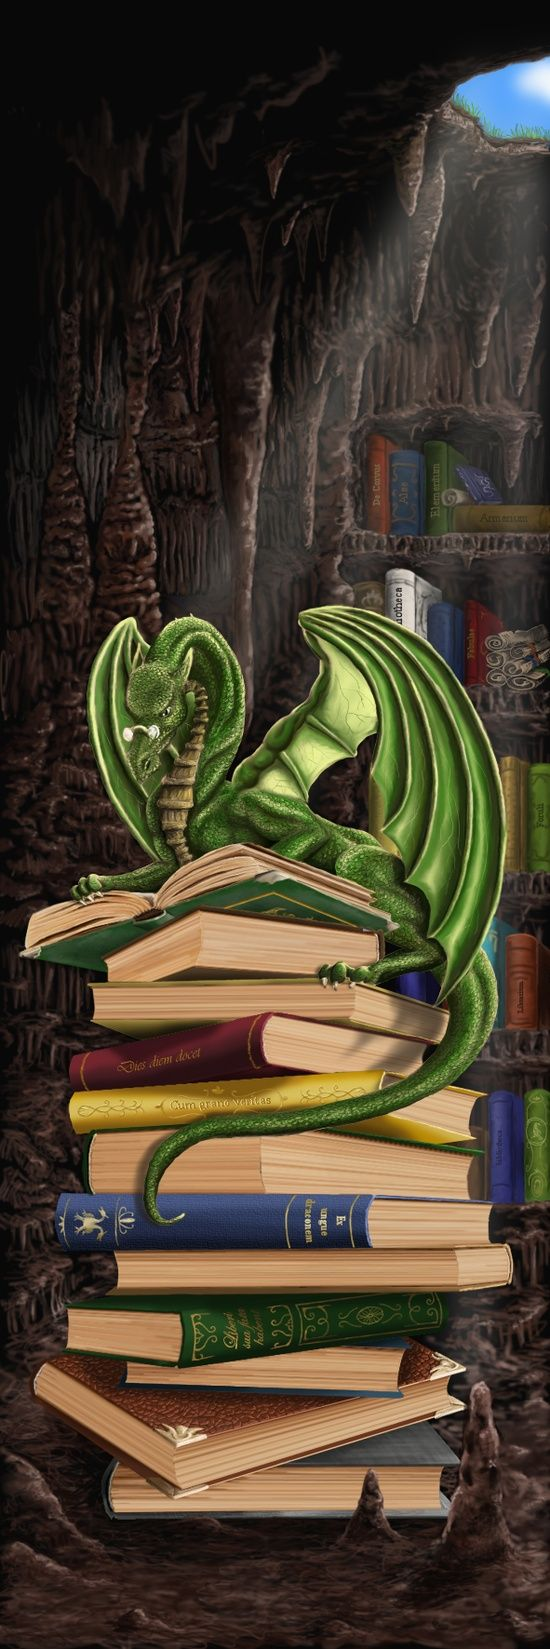 randal spangler cr atures fantastiques pinterest dragon fantastique et dragons. Black Bedroom Furniture Sets. Home Design Ideas